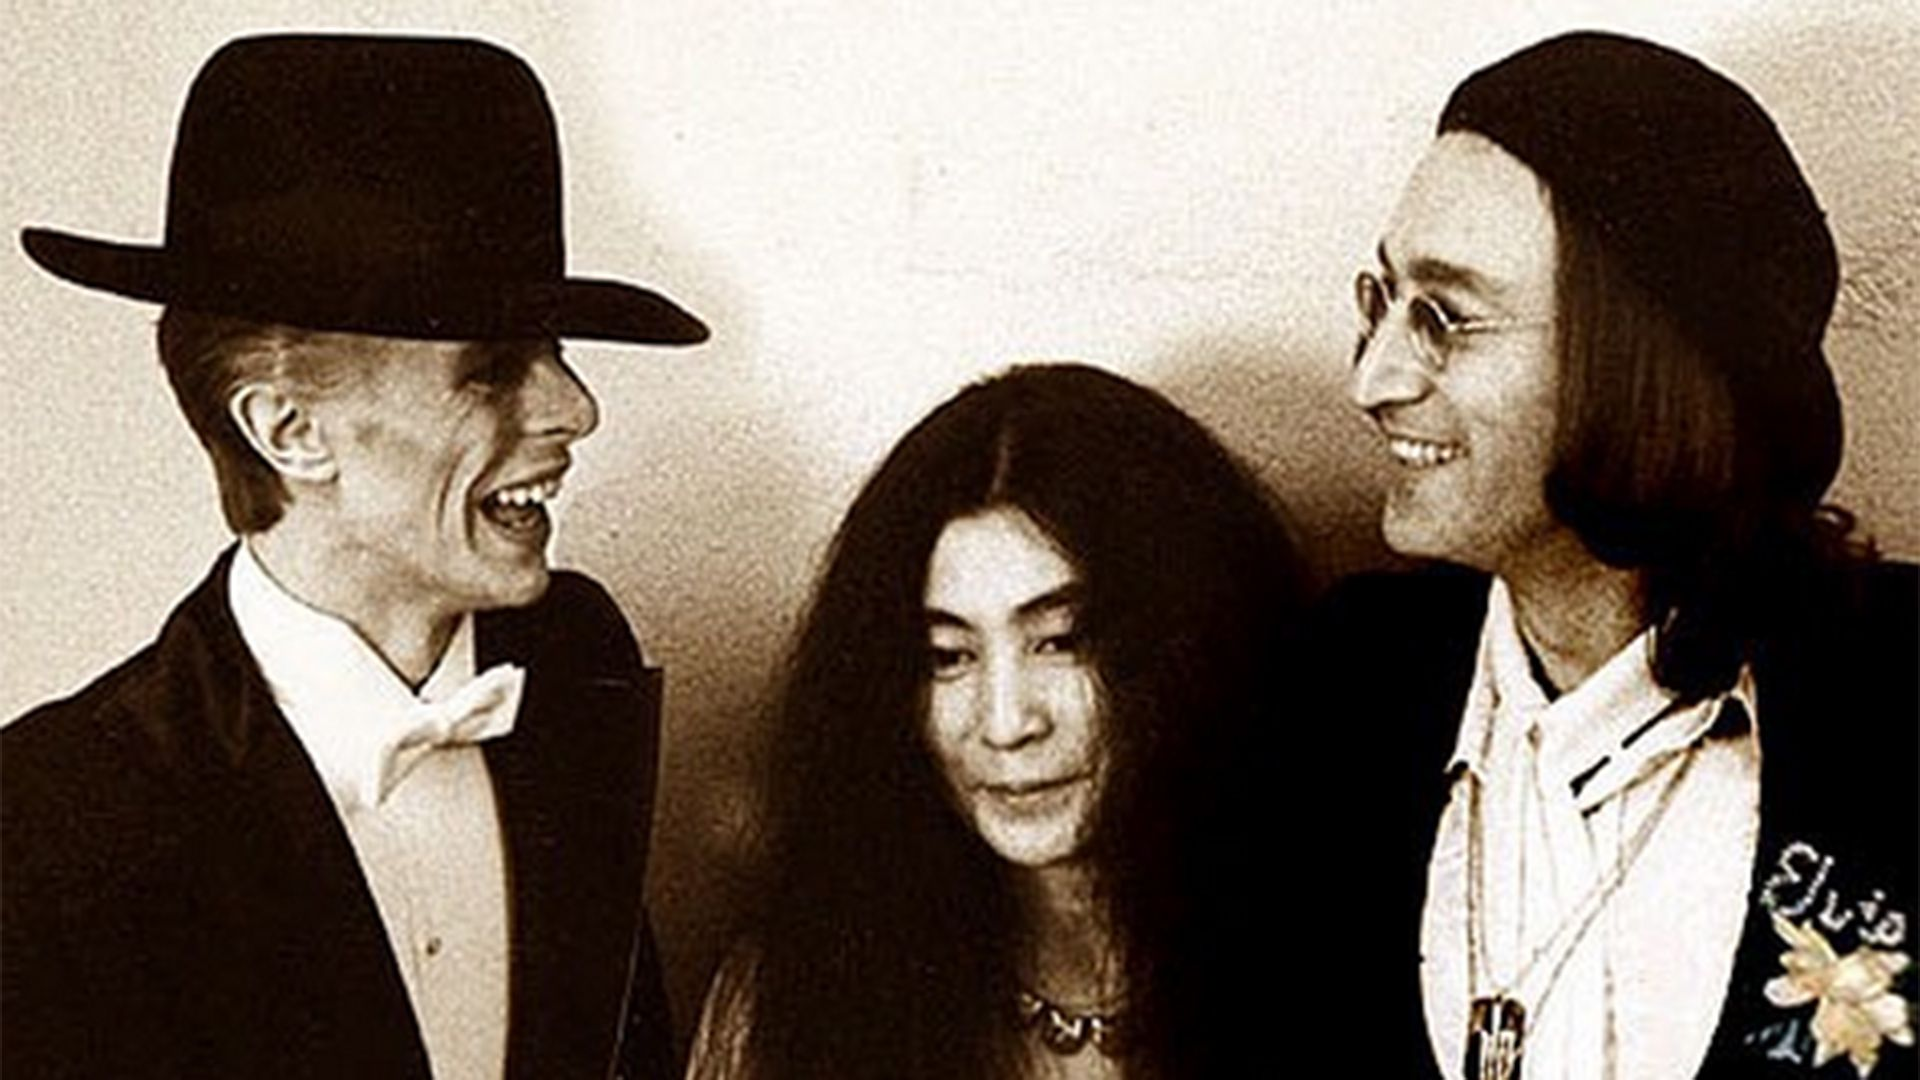 Yoko Ono David Bowie Was A Father Figure To My Son After John Lennon Died David Bowie John Lennon David Bowie David Bowie Pictures